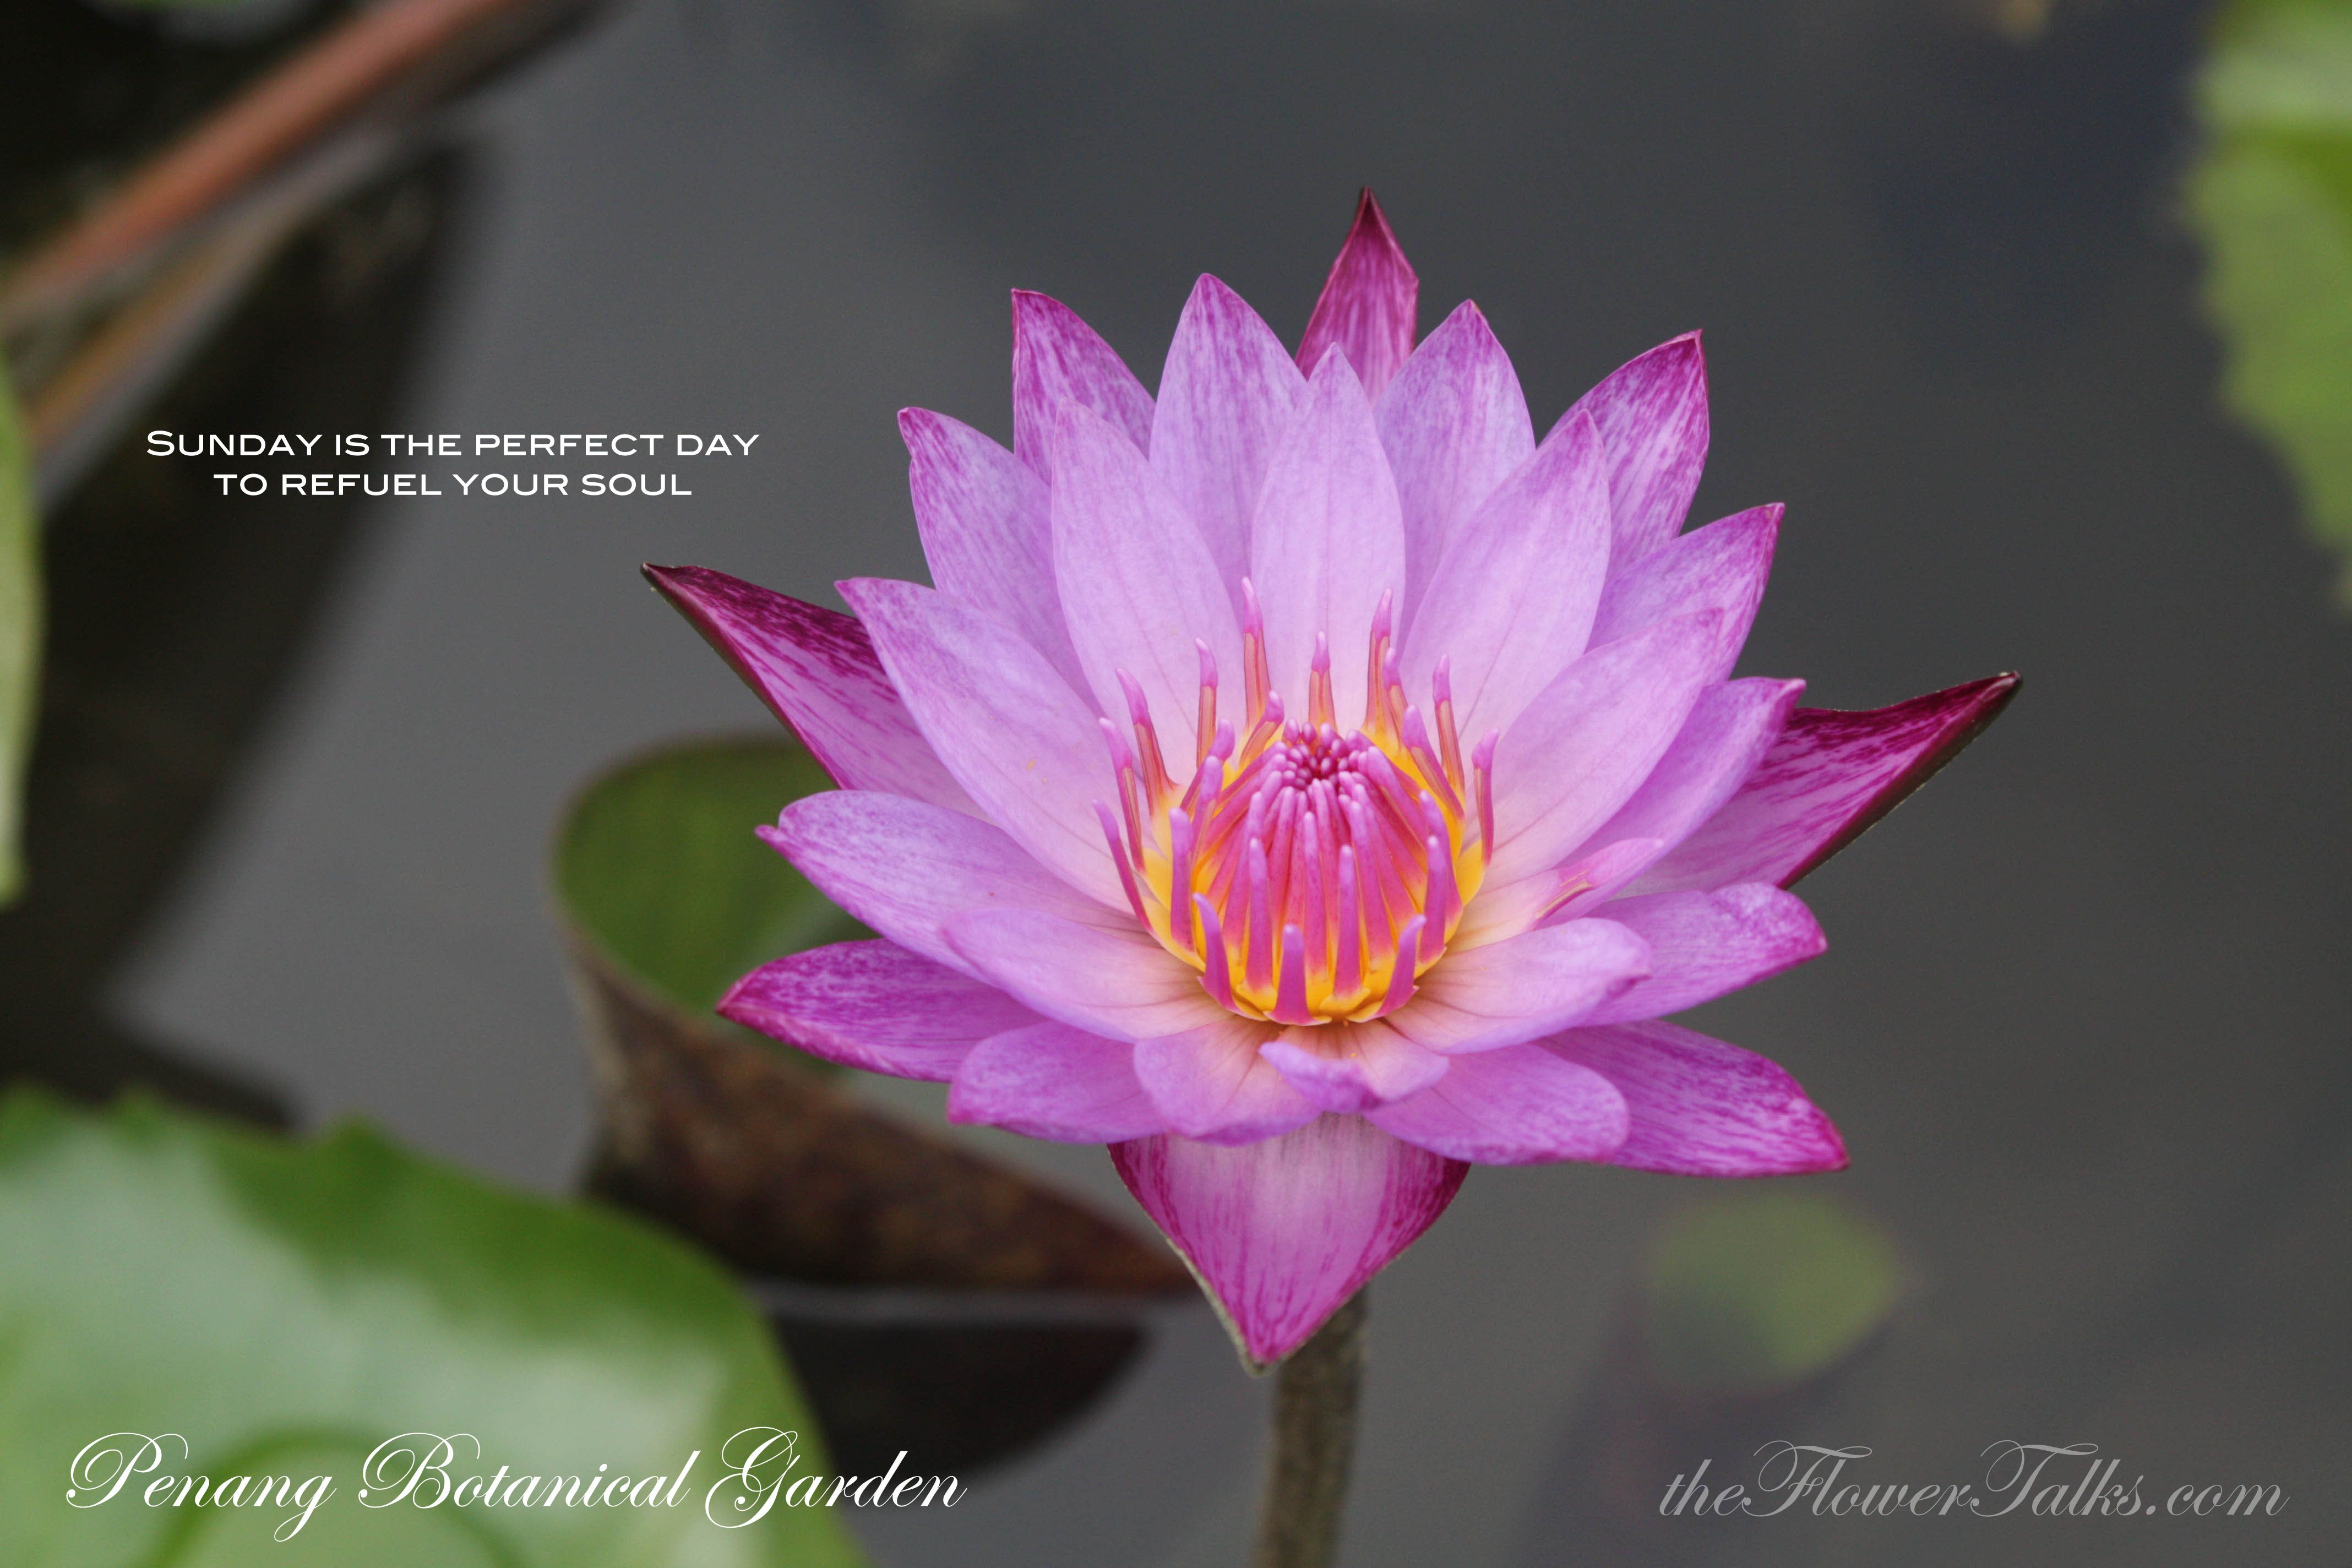 Sunday is a perfect day to refuel your soul Waterlily